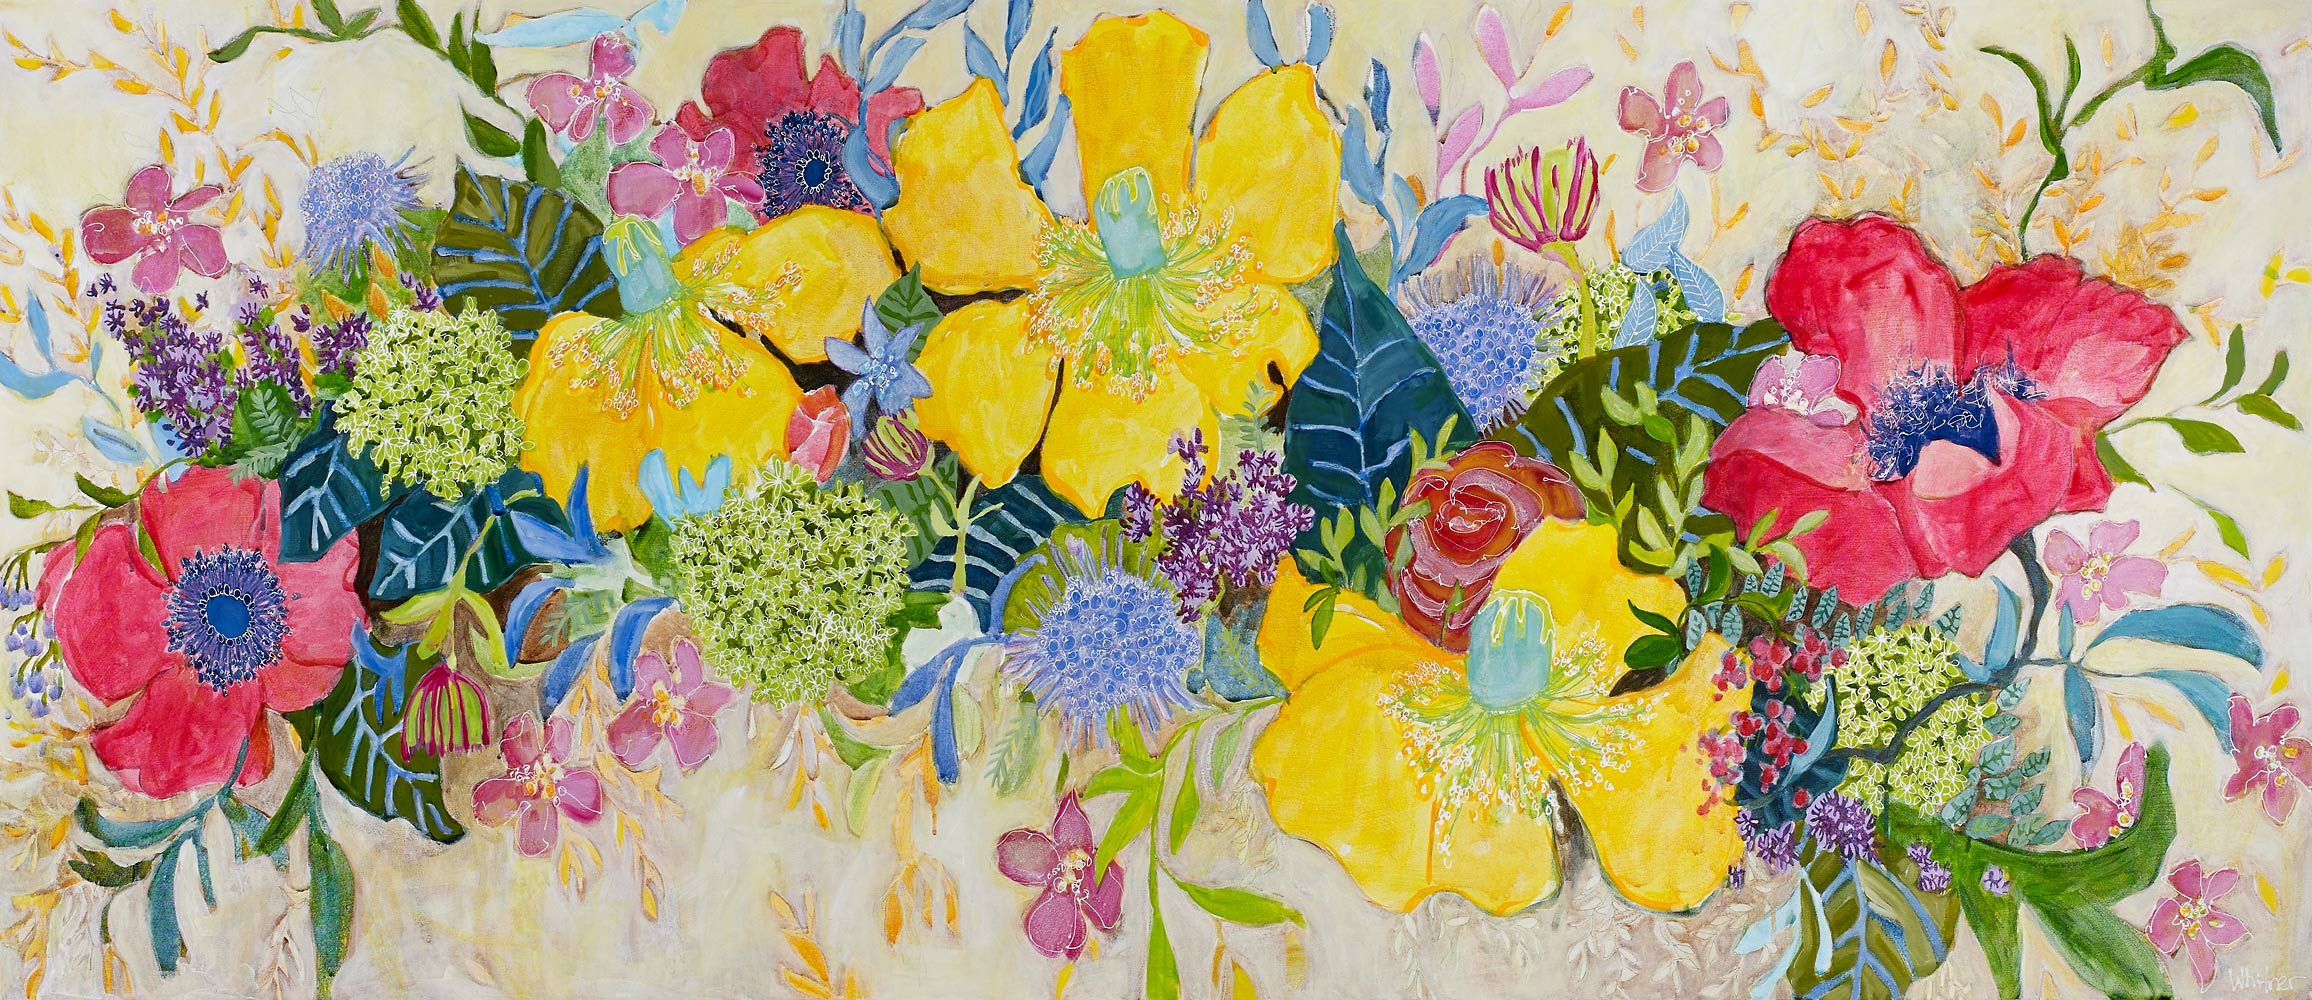 Floral Medley Rocky Mountain Paintings Contemporary Funky Landscapes Lance Whitner Artist Steamboat Springs